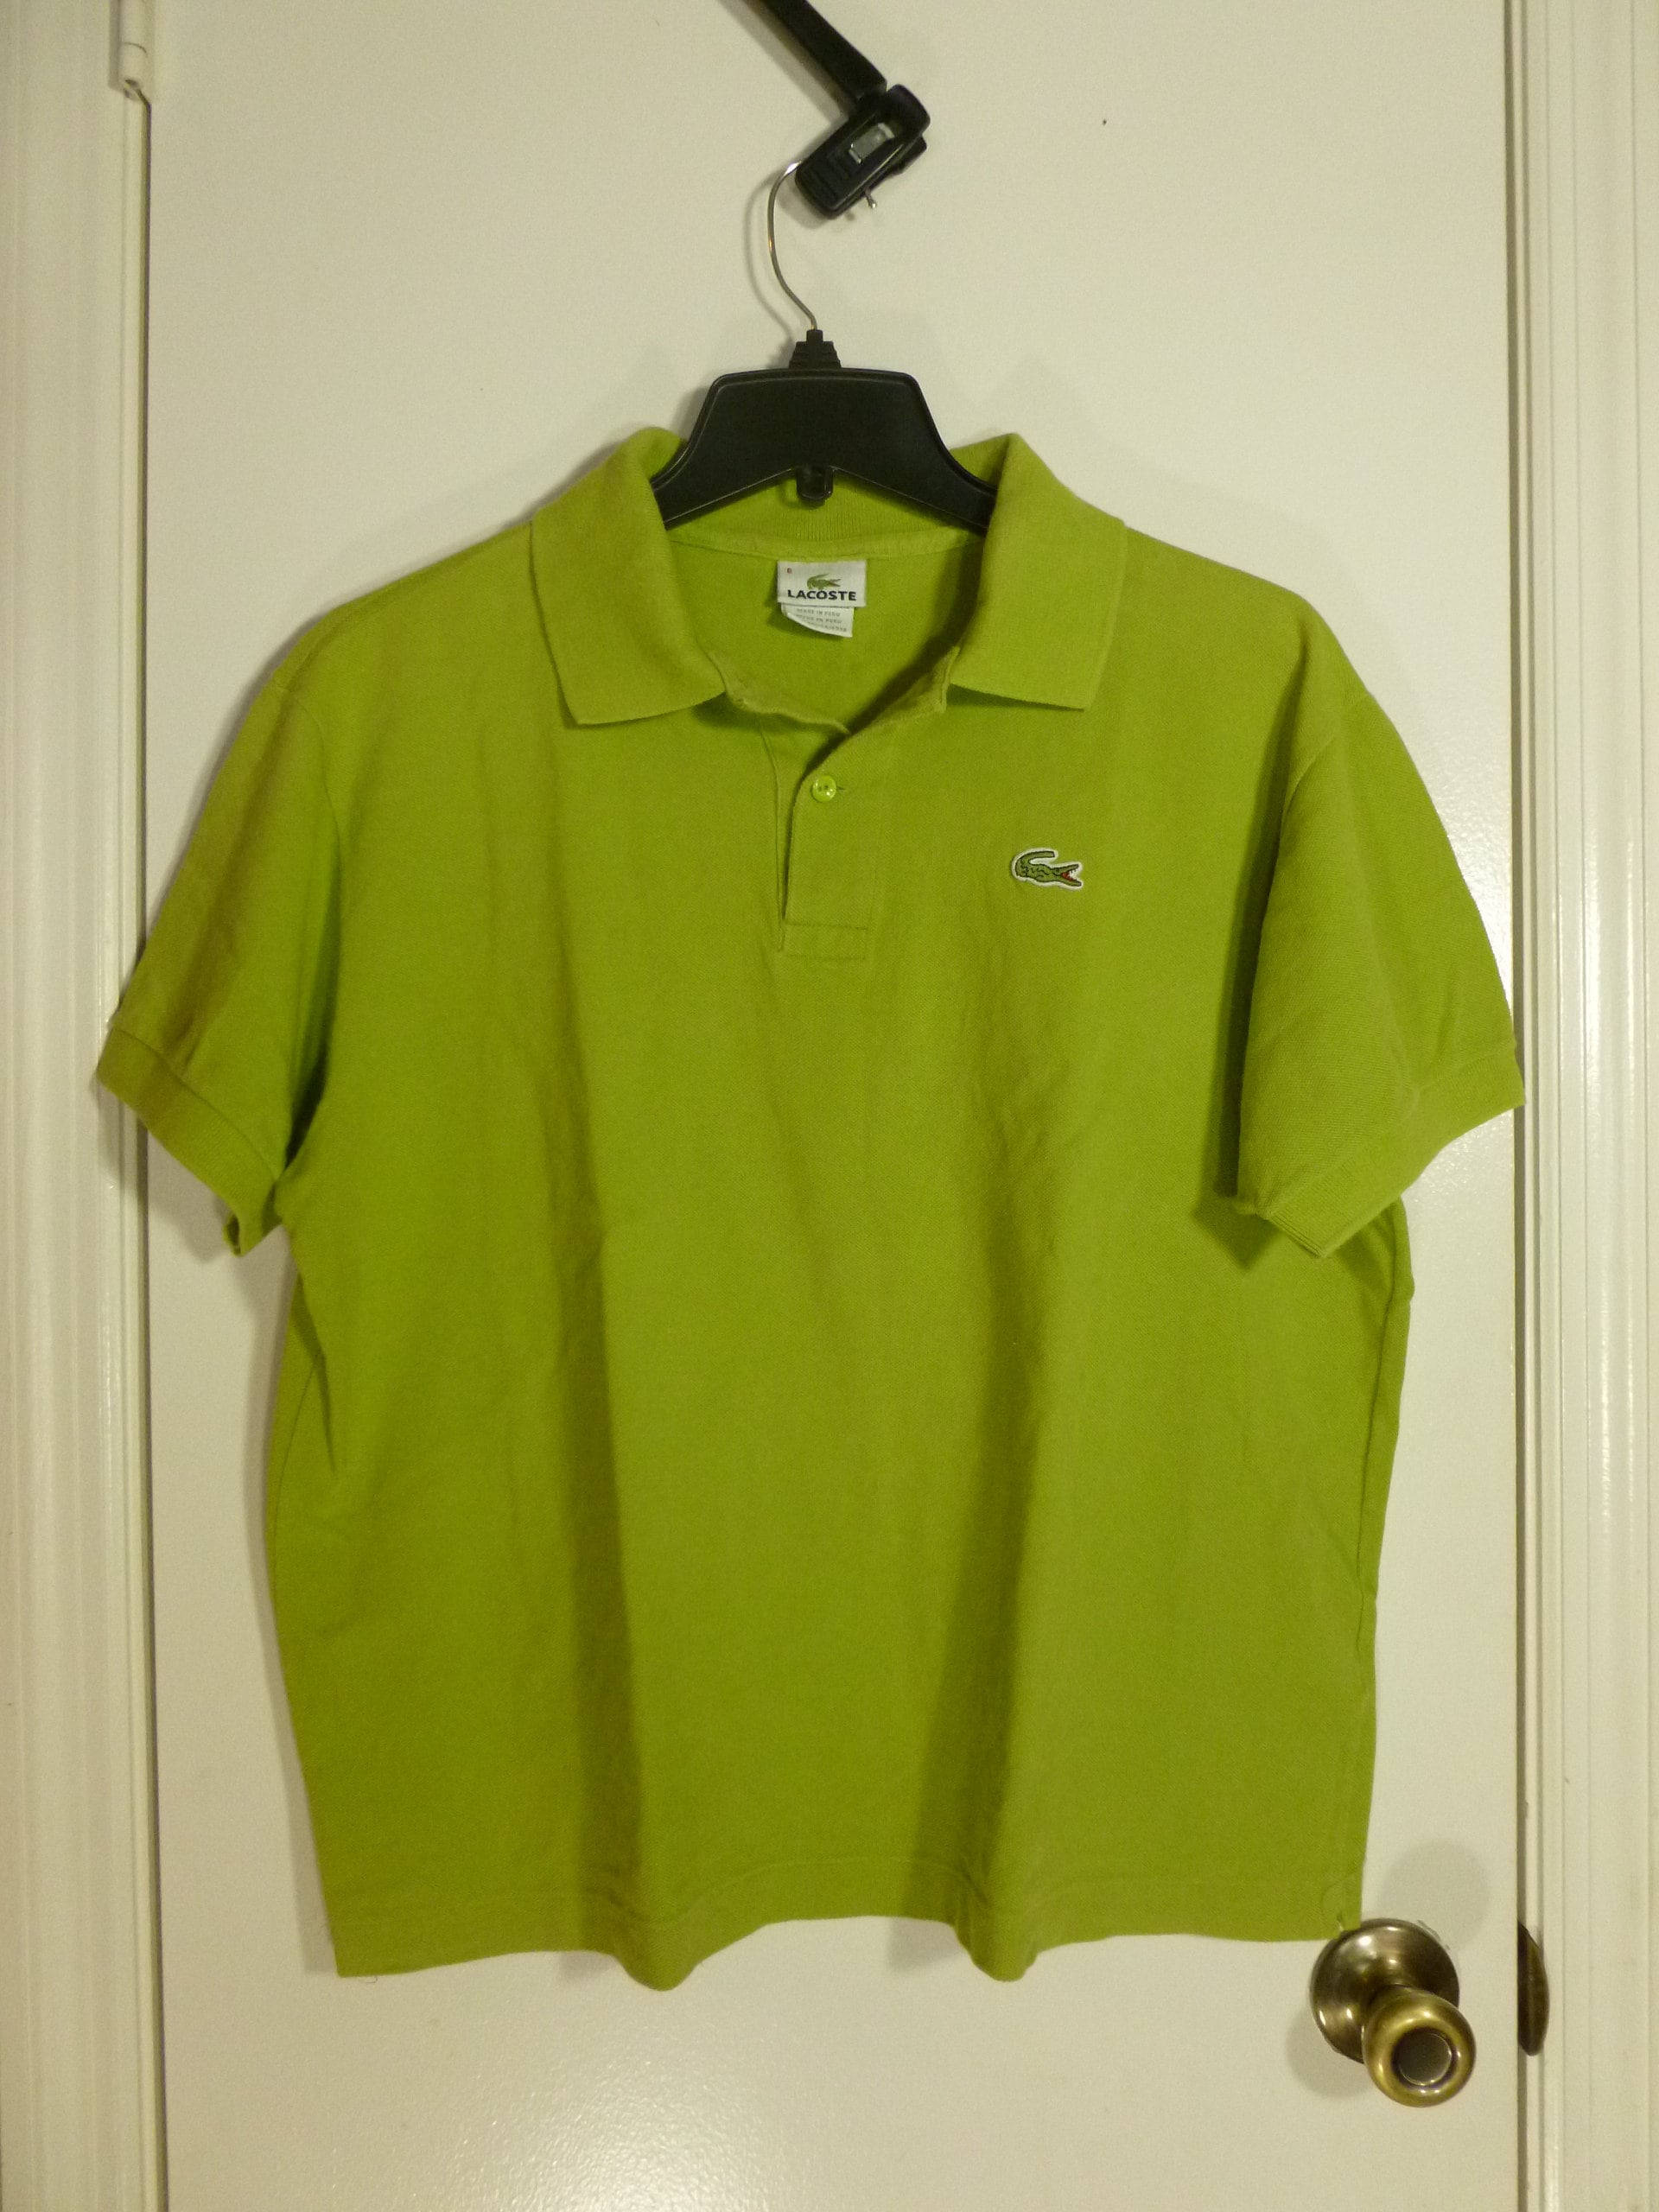 Lacoste Mens Green Polo Shirt Size 6 Cotton Etsy